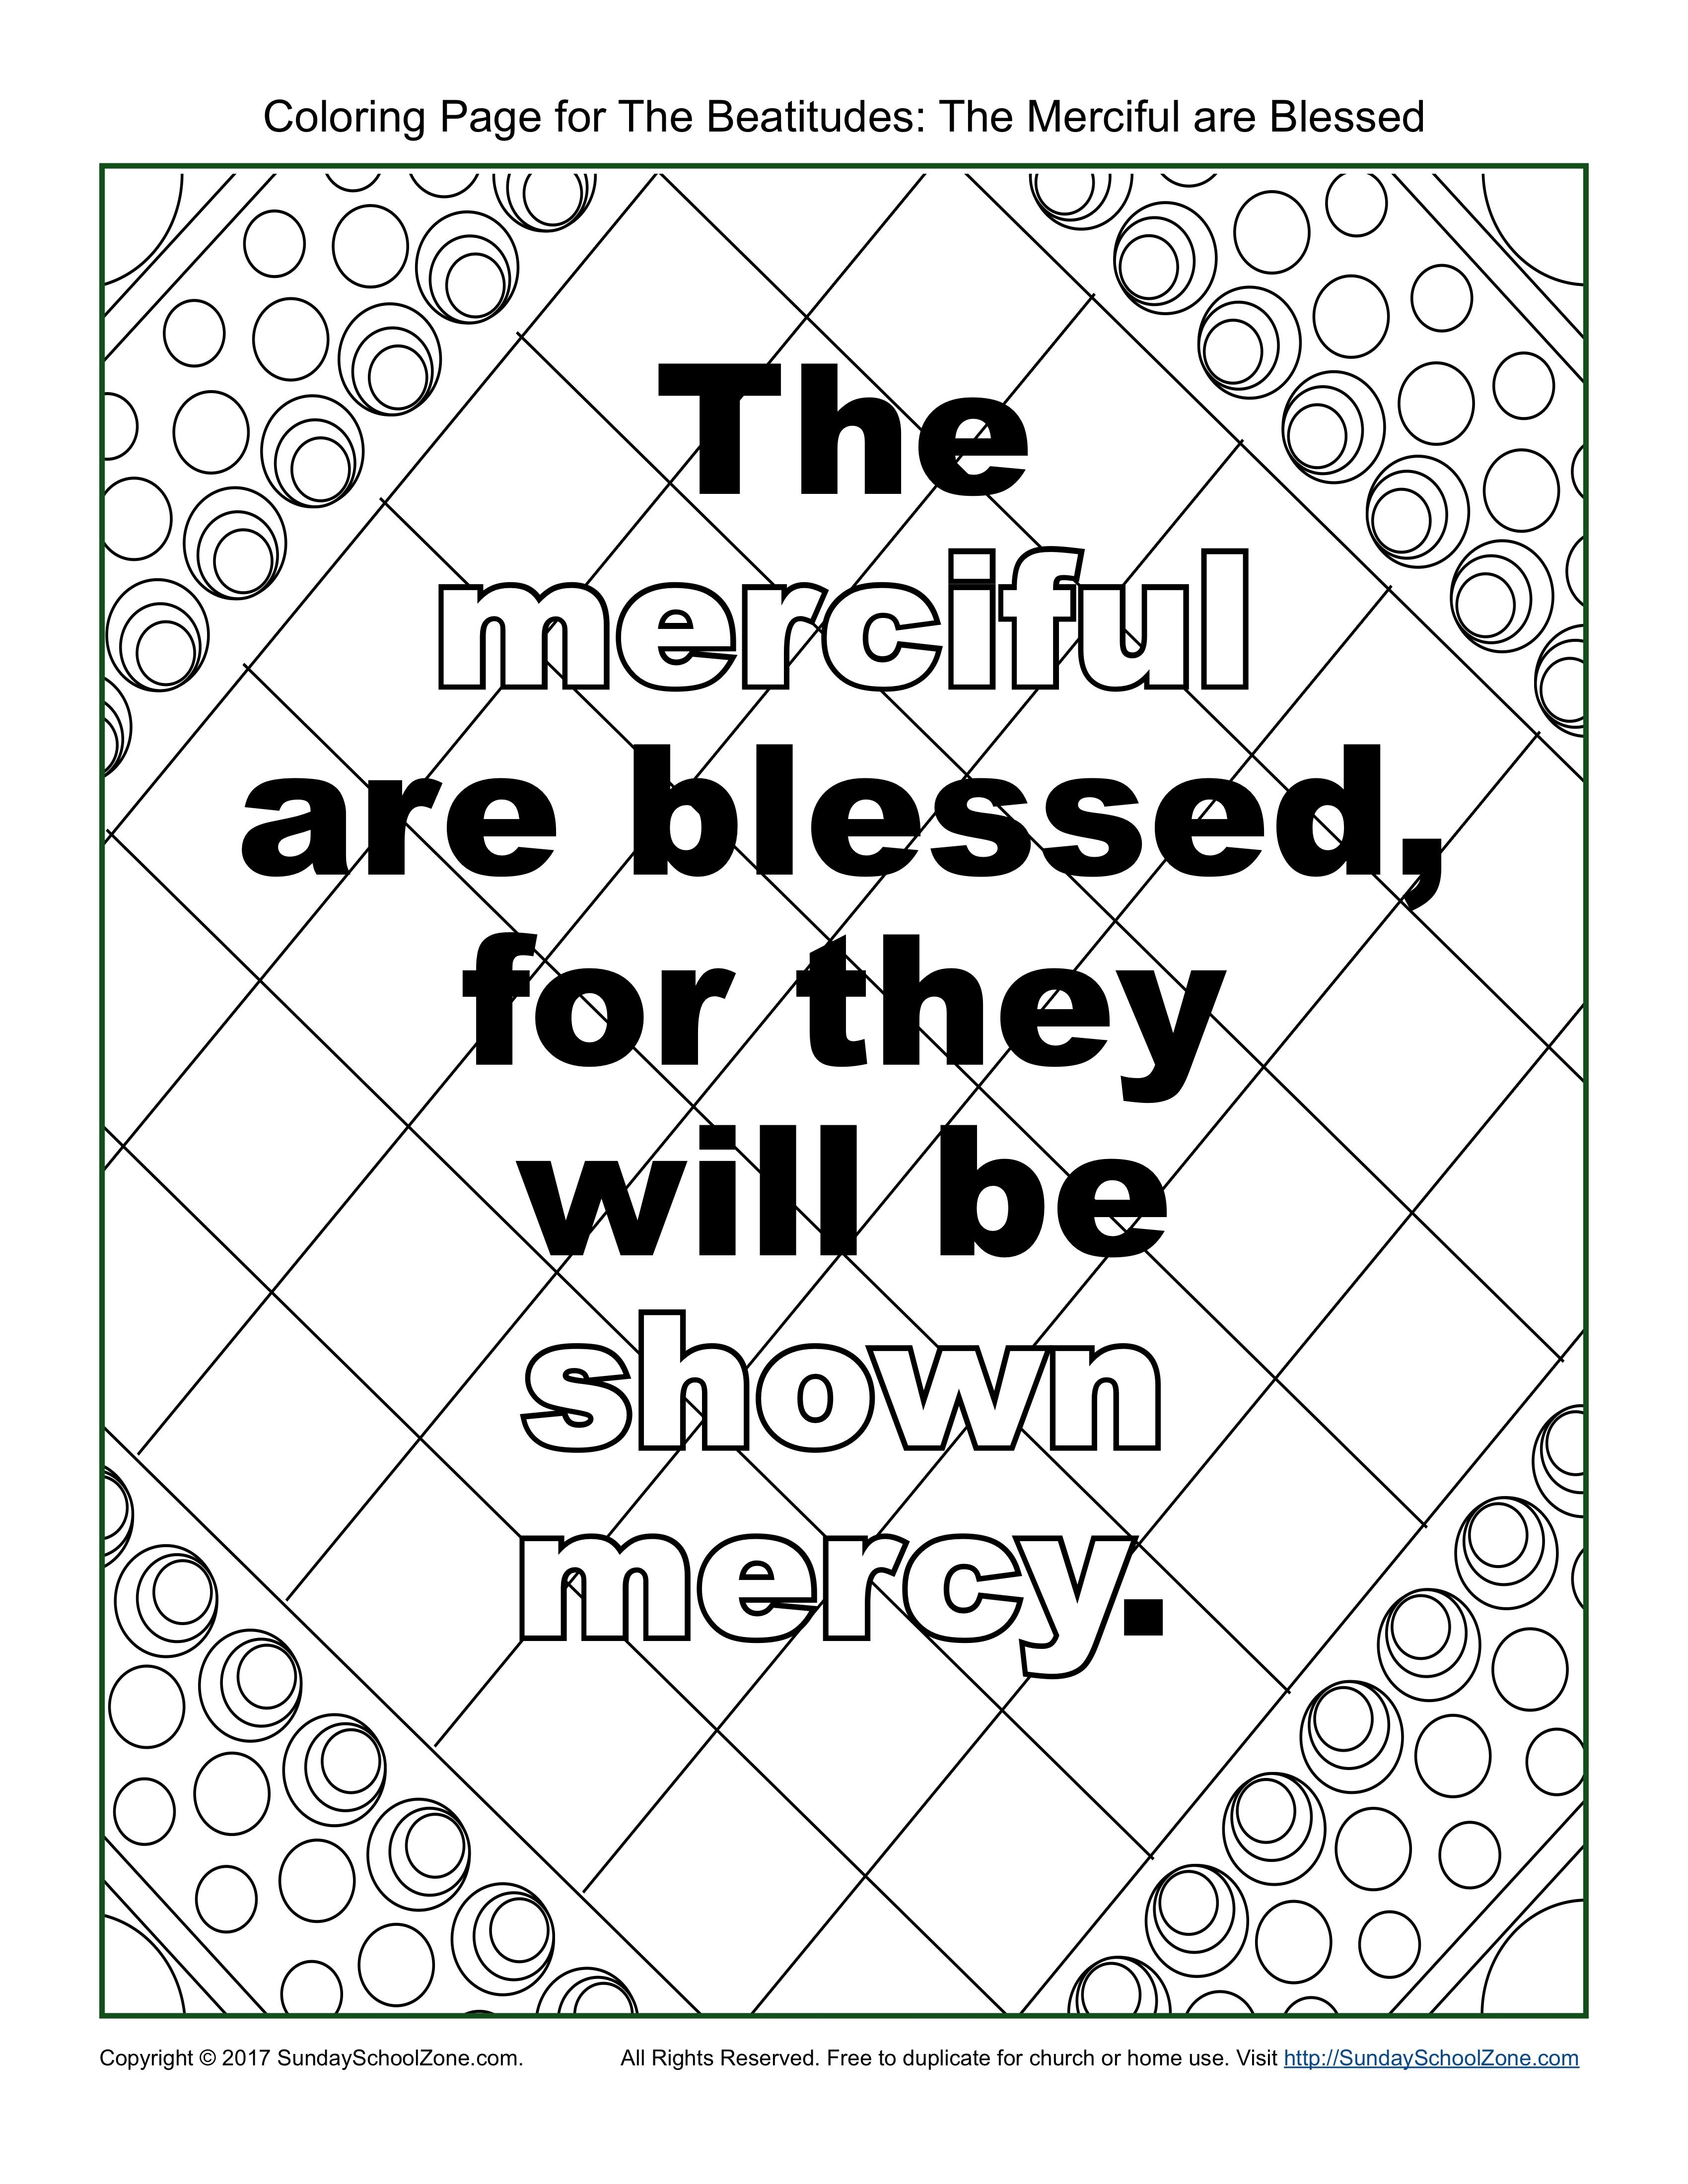 The Merciful Beatitudes Coloring Page On Sunday School Zone